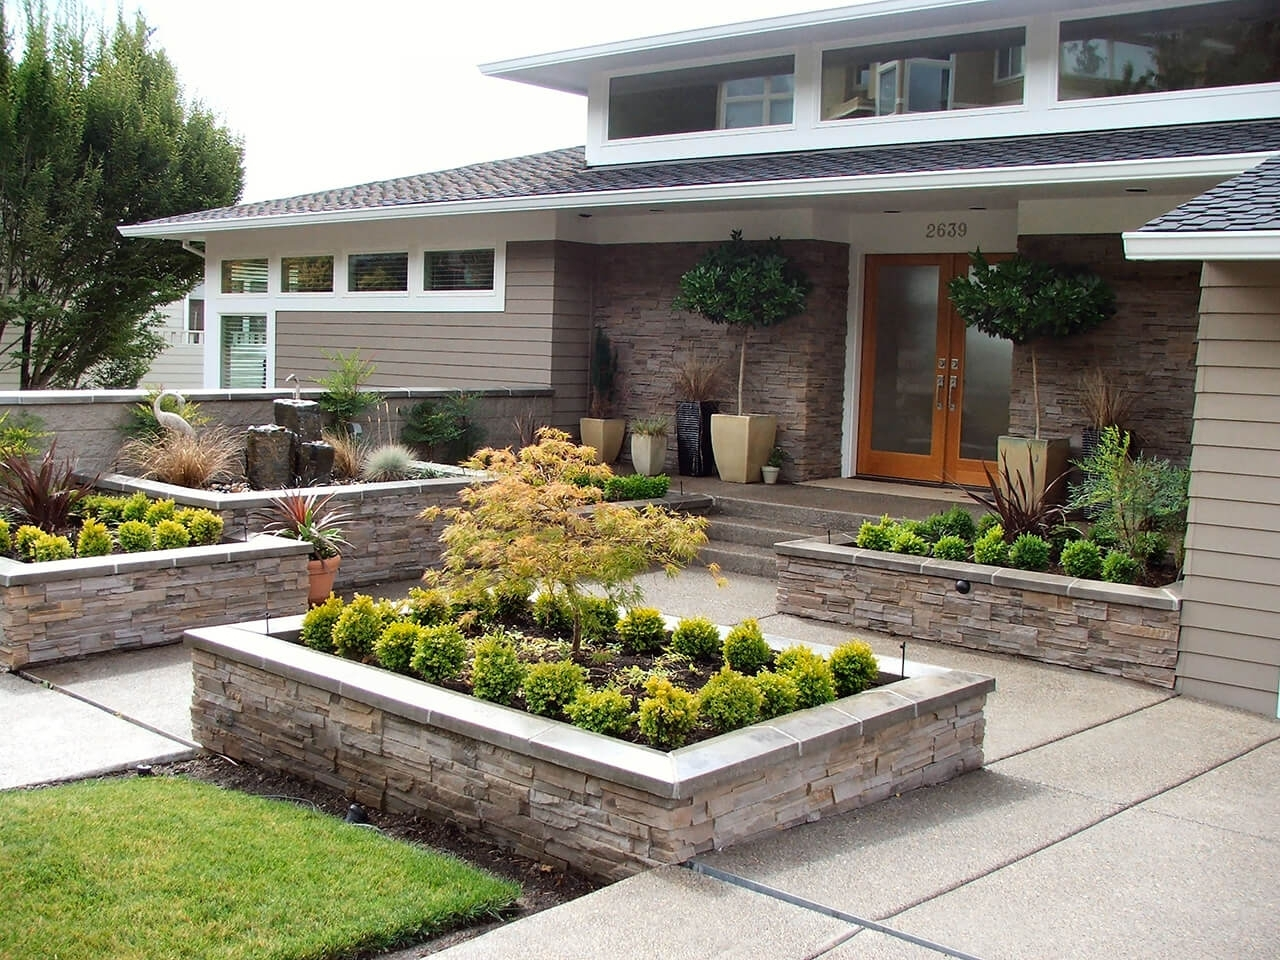 20 Brilliant Front Garden Landscaping Ideas Style Motivation Pertaining To Front Sidewalk Landscaping Ideas How Lay Front Sidewalk Landscaping Ideas